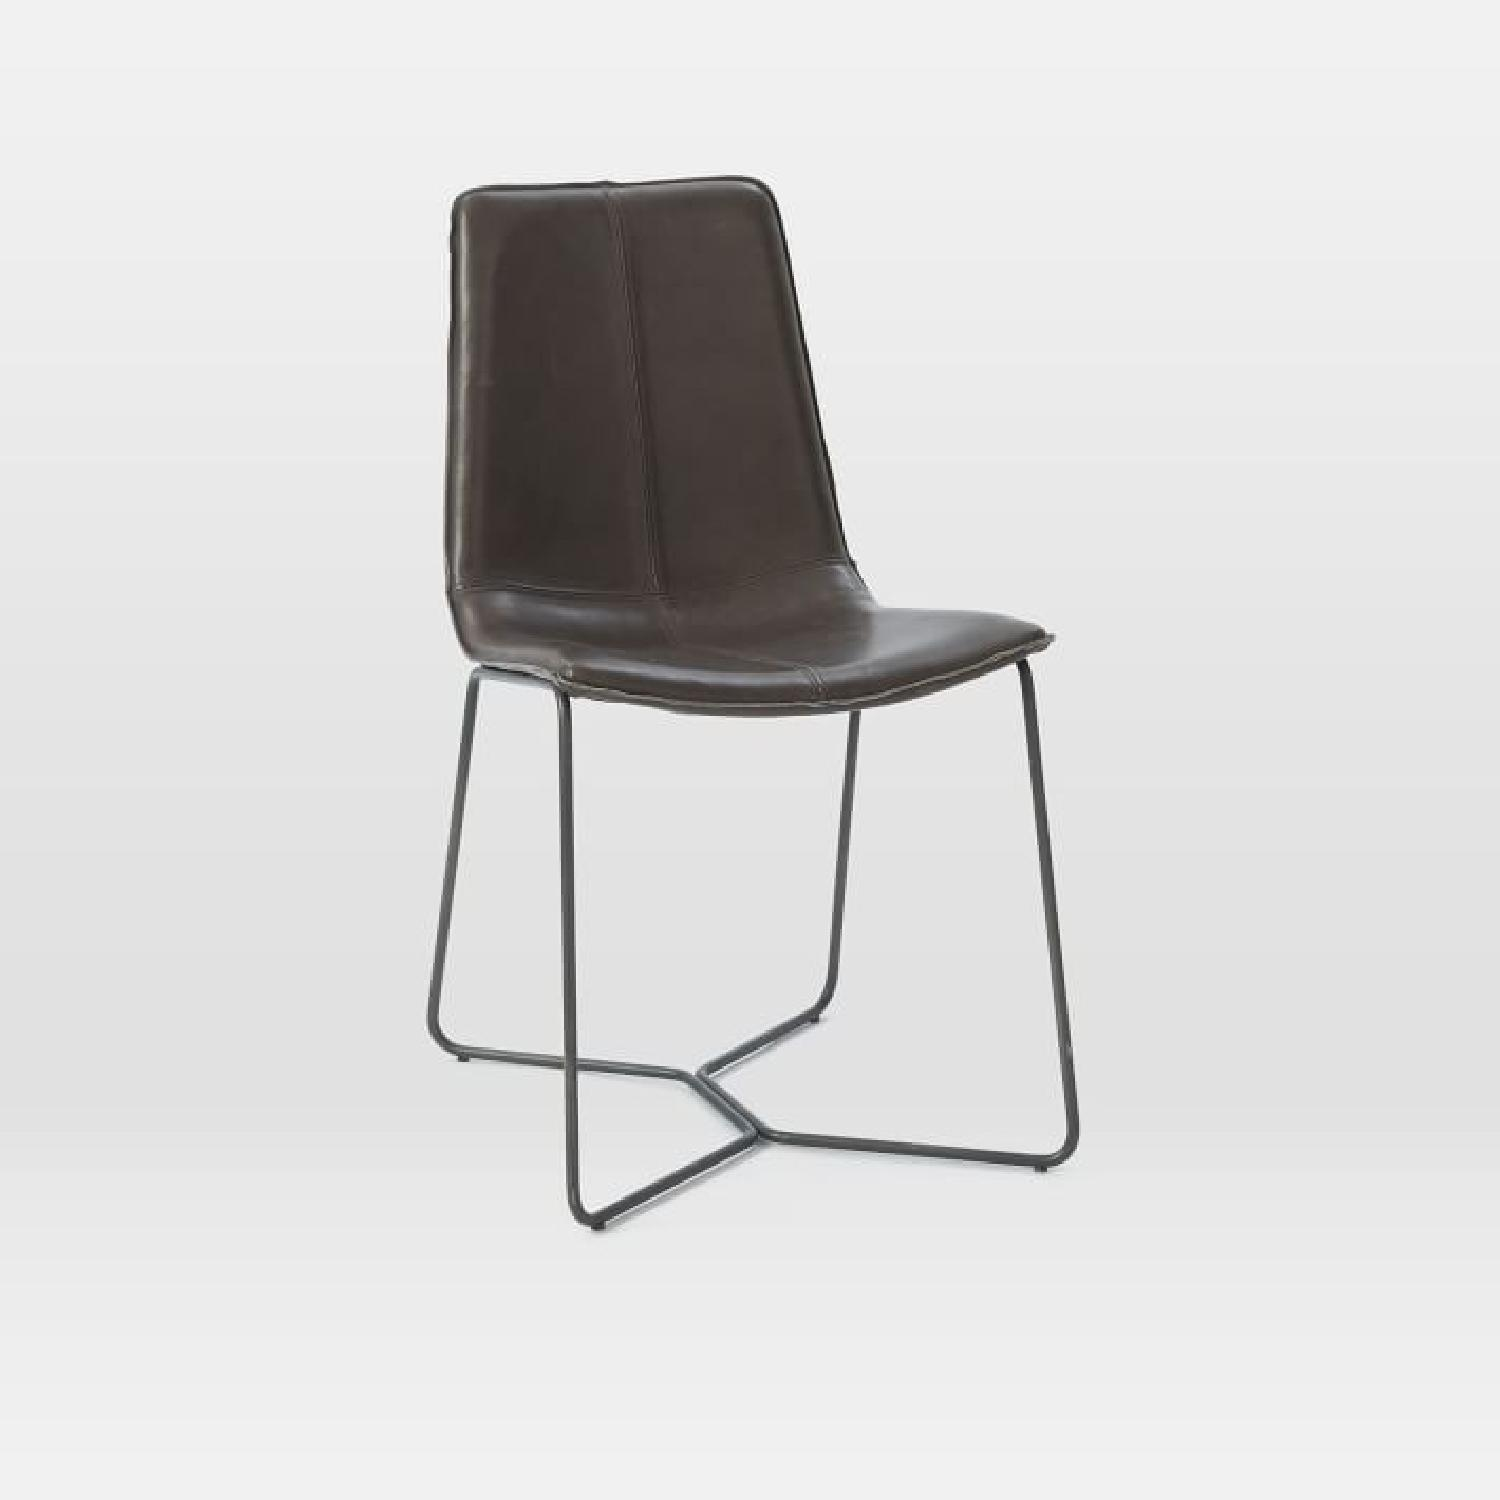 West Elm Slope Dining Chair in Charcoal Leather - image-0